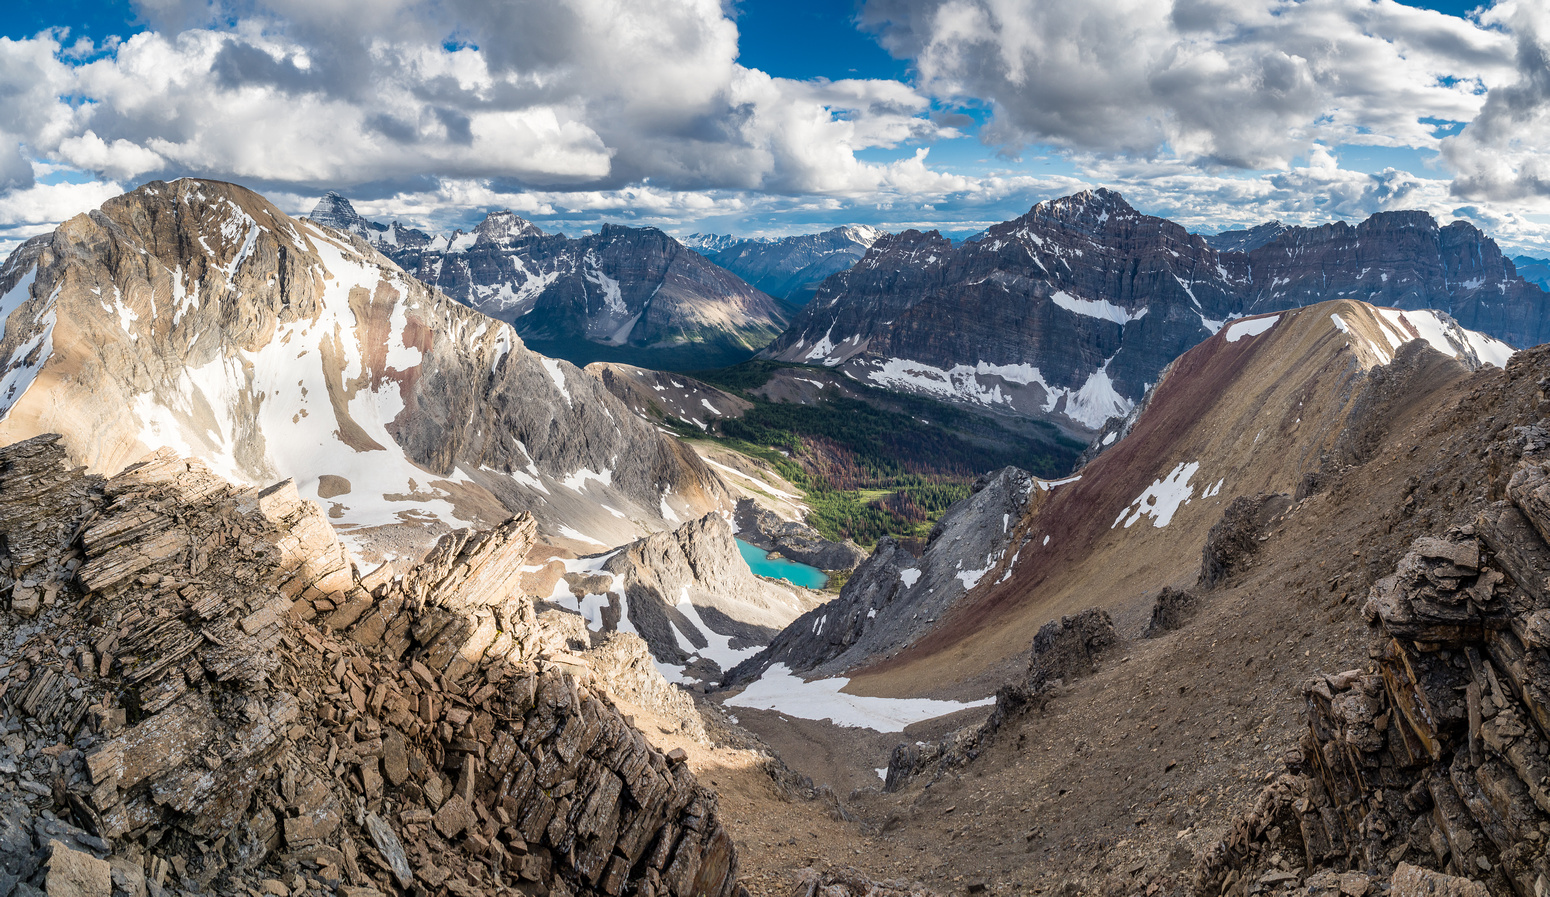 This is why we beat ourselves up so badly to get to these rarely ascended peaks! Nestor Lake is stunning in the late day lighting as is its namesake peak in this view over Ferro Pass towards Nestor Pe